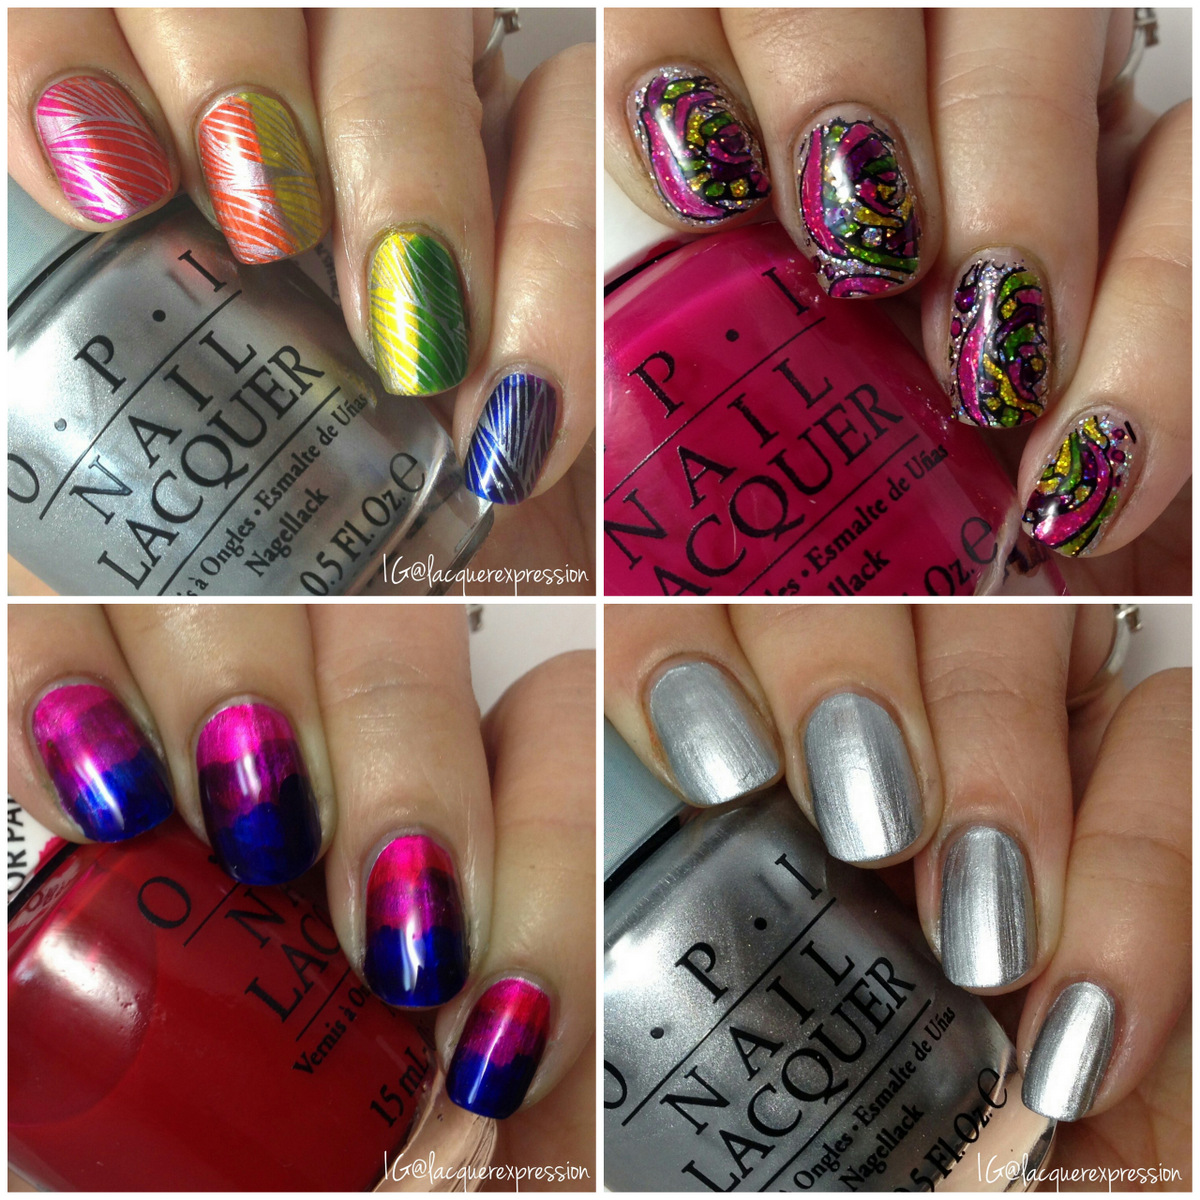 Swatch and Review - OPI Color Paints Collection Part III ...